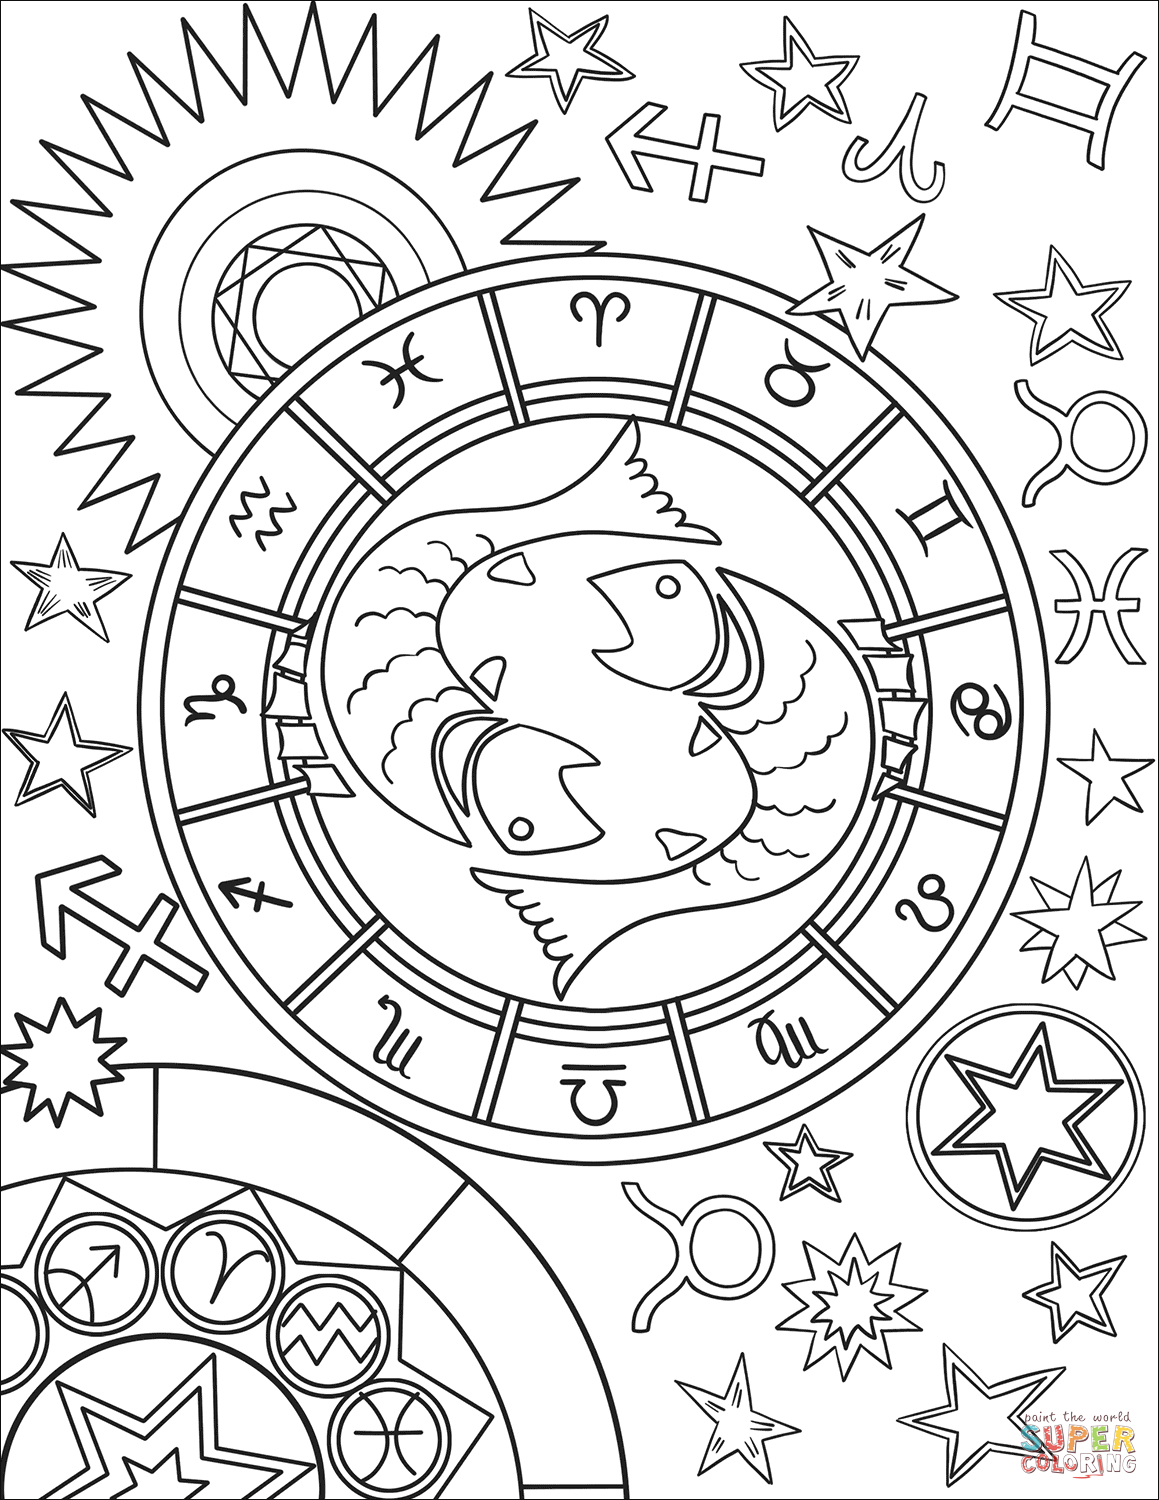 zodiac coloring pages zodiac sign coloring pages 12 printable zodiac coloring coloring zodiac pages